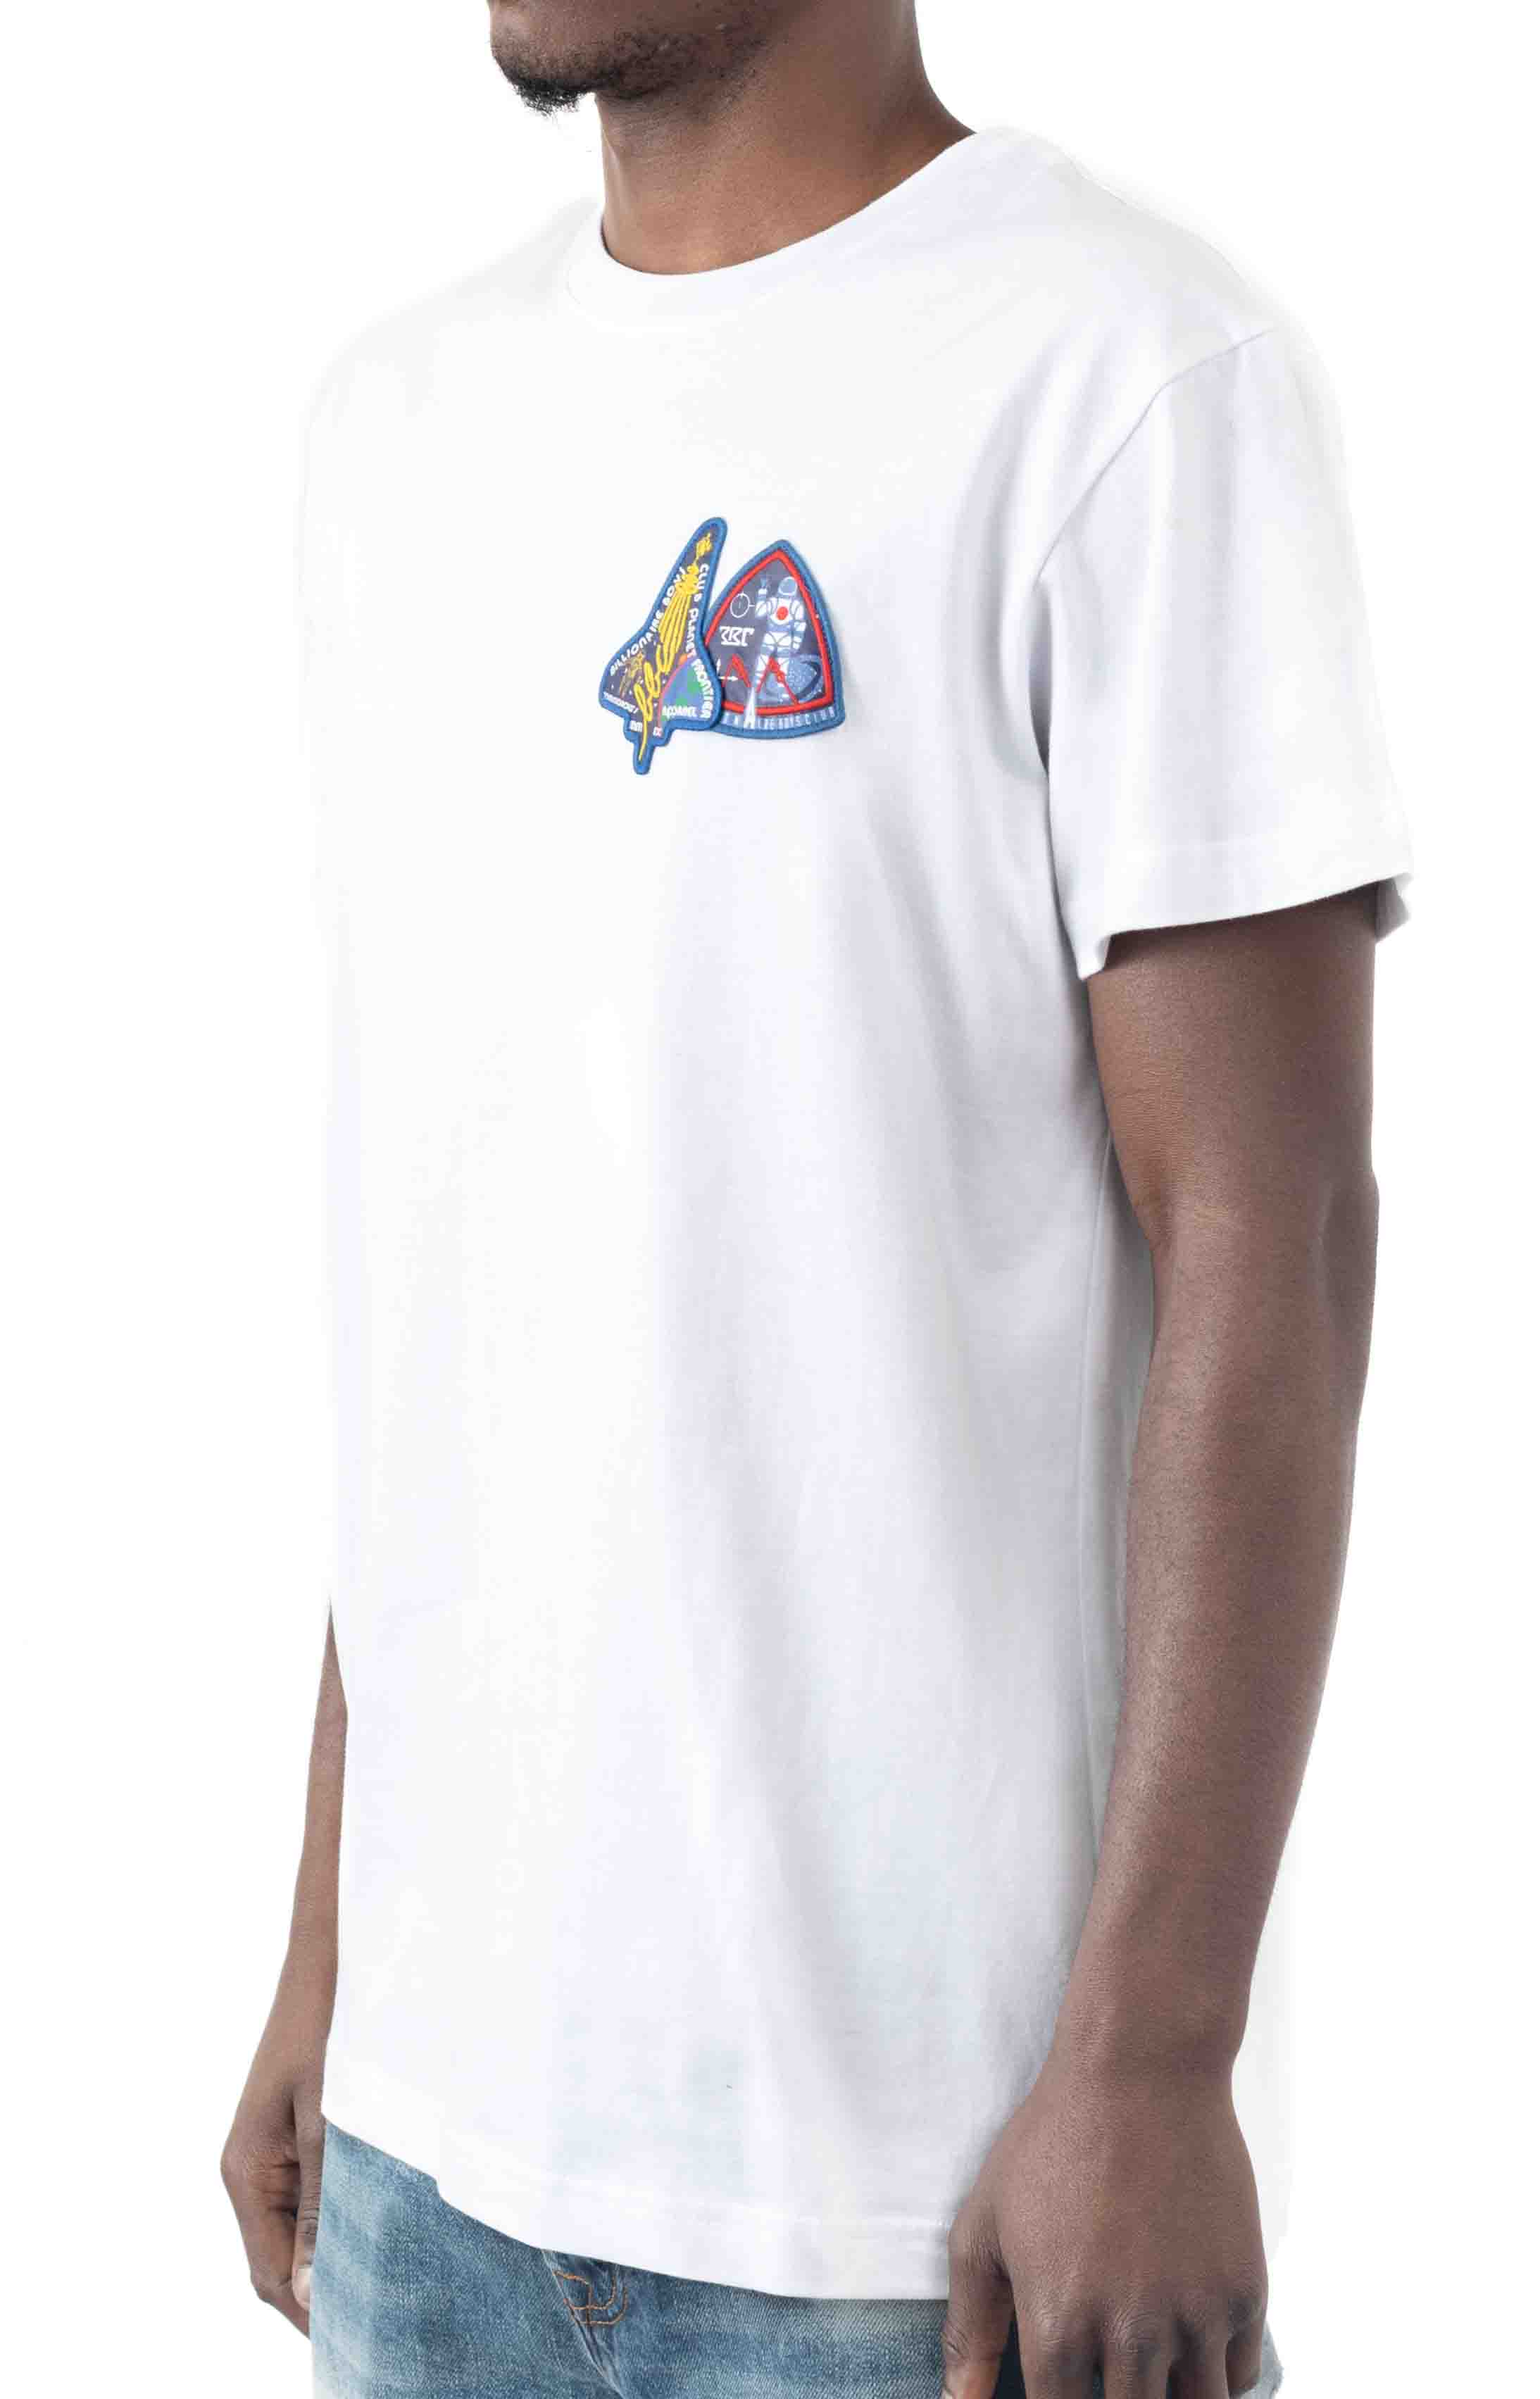 BB Frontier SS Knit T-Shirt - White  3